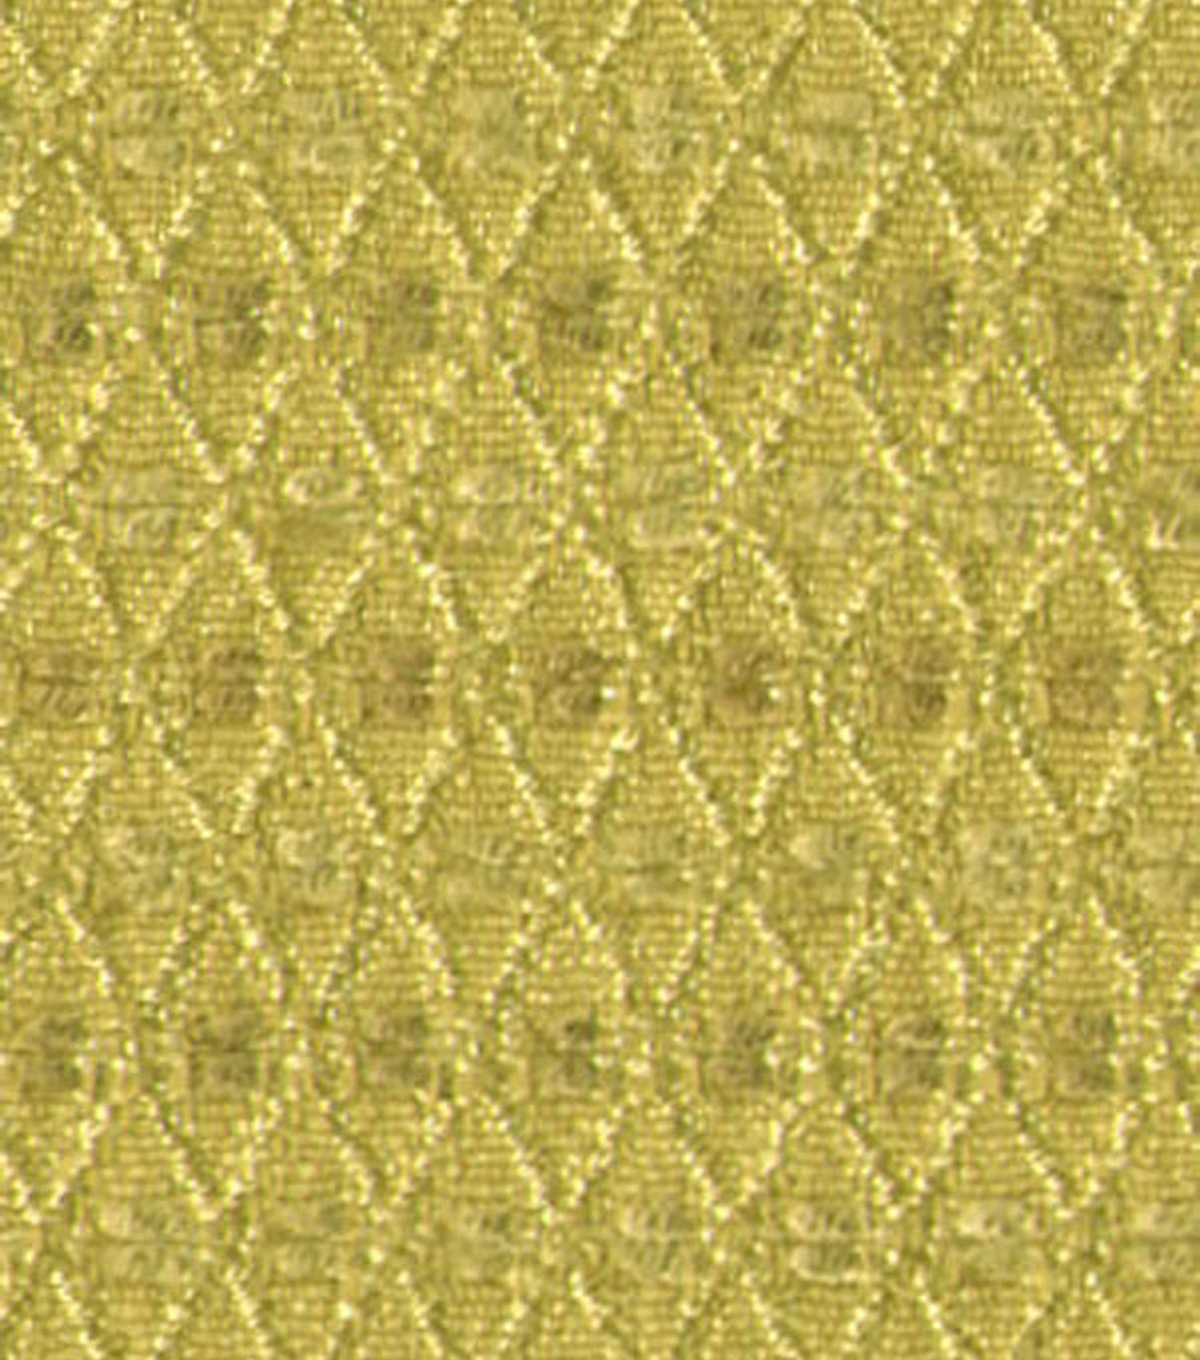 Home Decor 8\u0022x8\u0022 Fabric Swatch-Barrow M7356-5135 Wheat